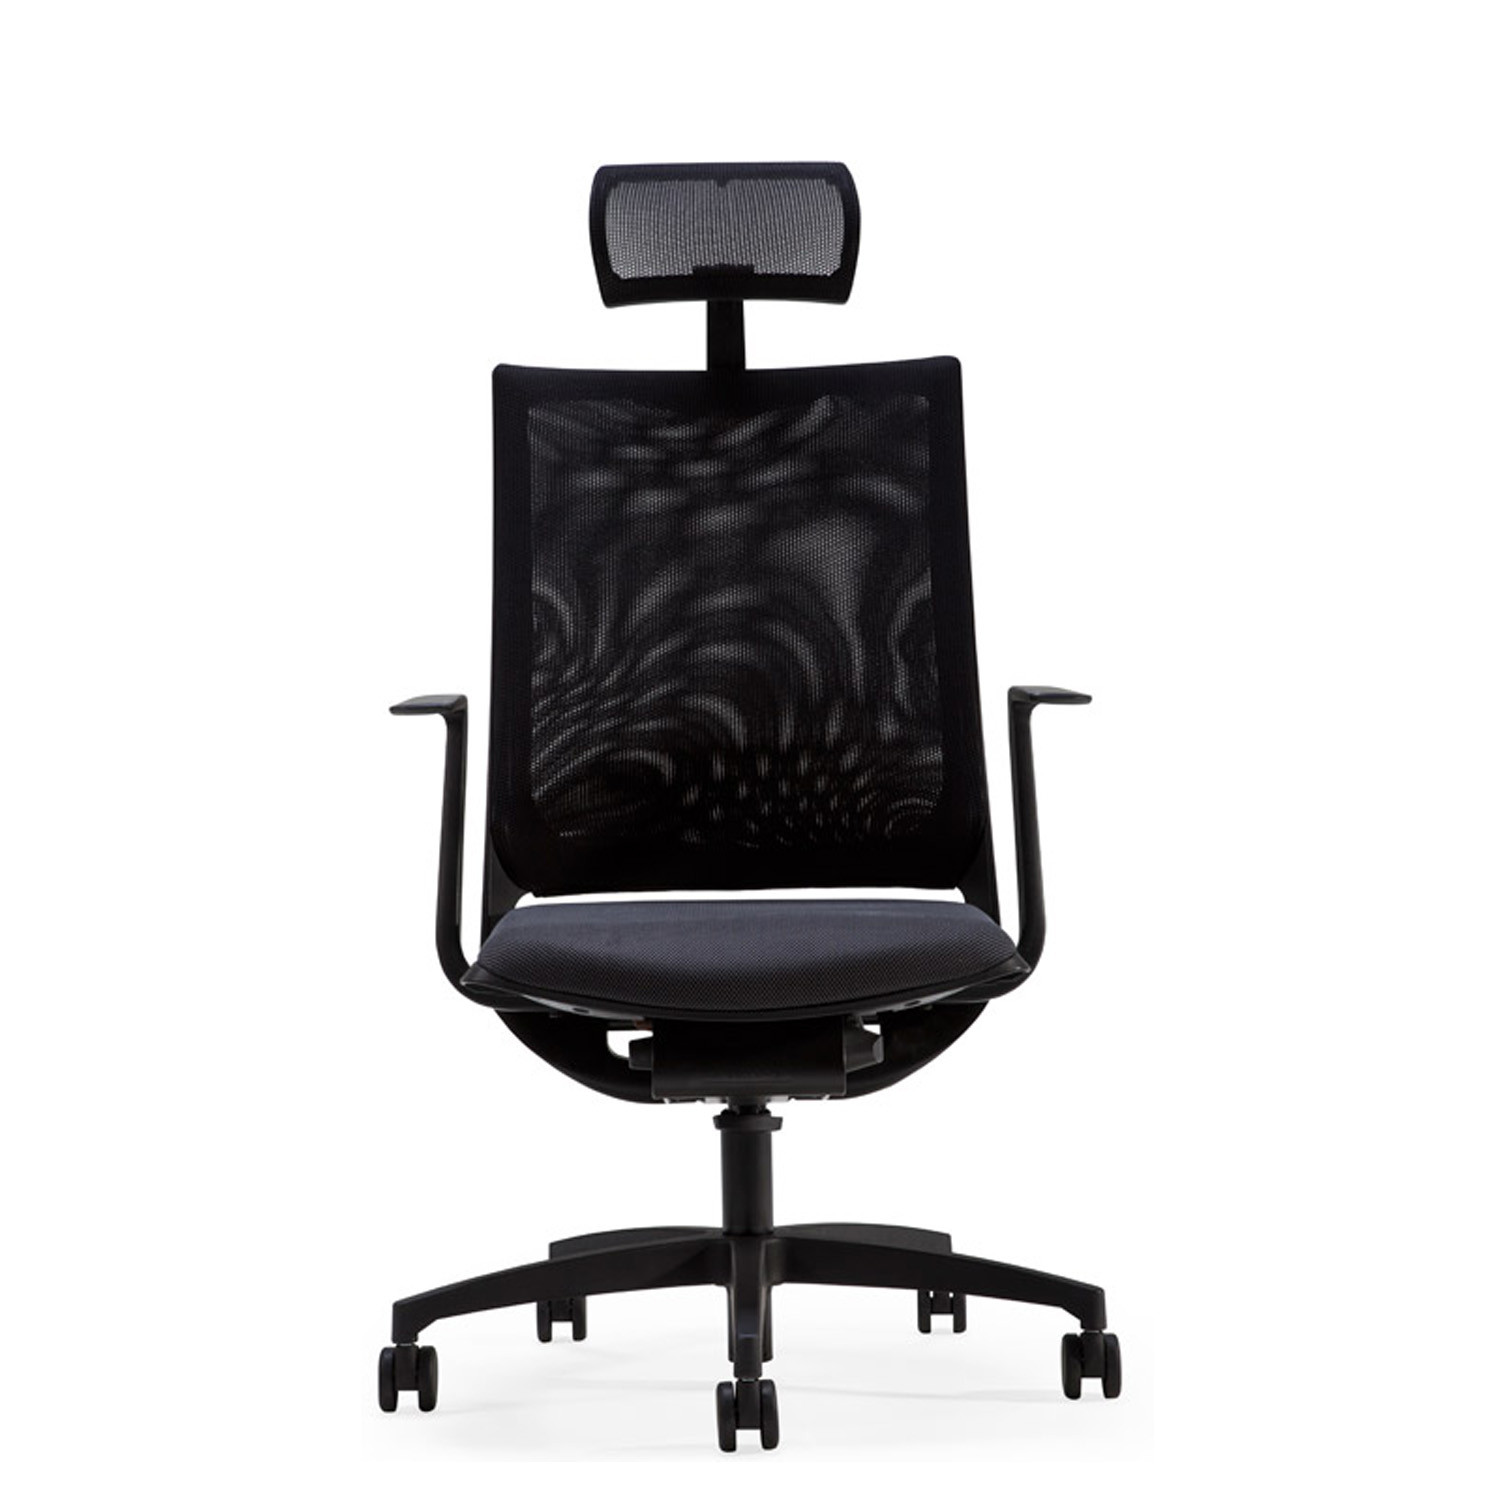 Gala Ergonomic Task Chair with Neckrest